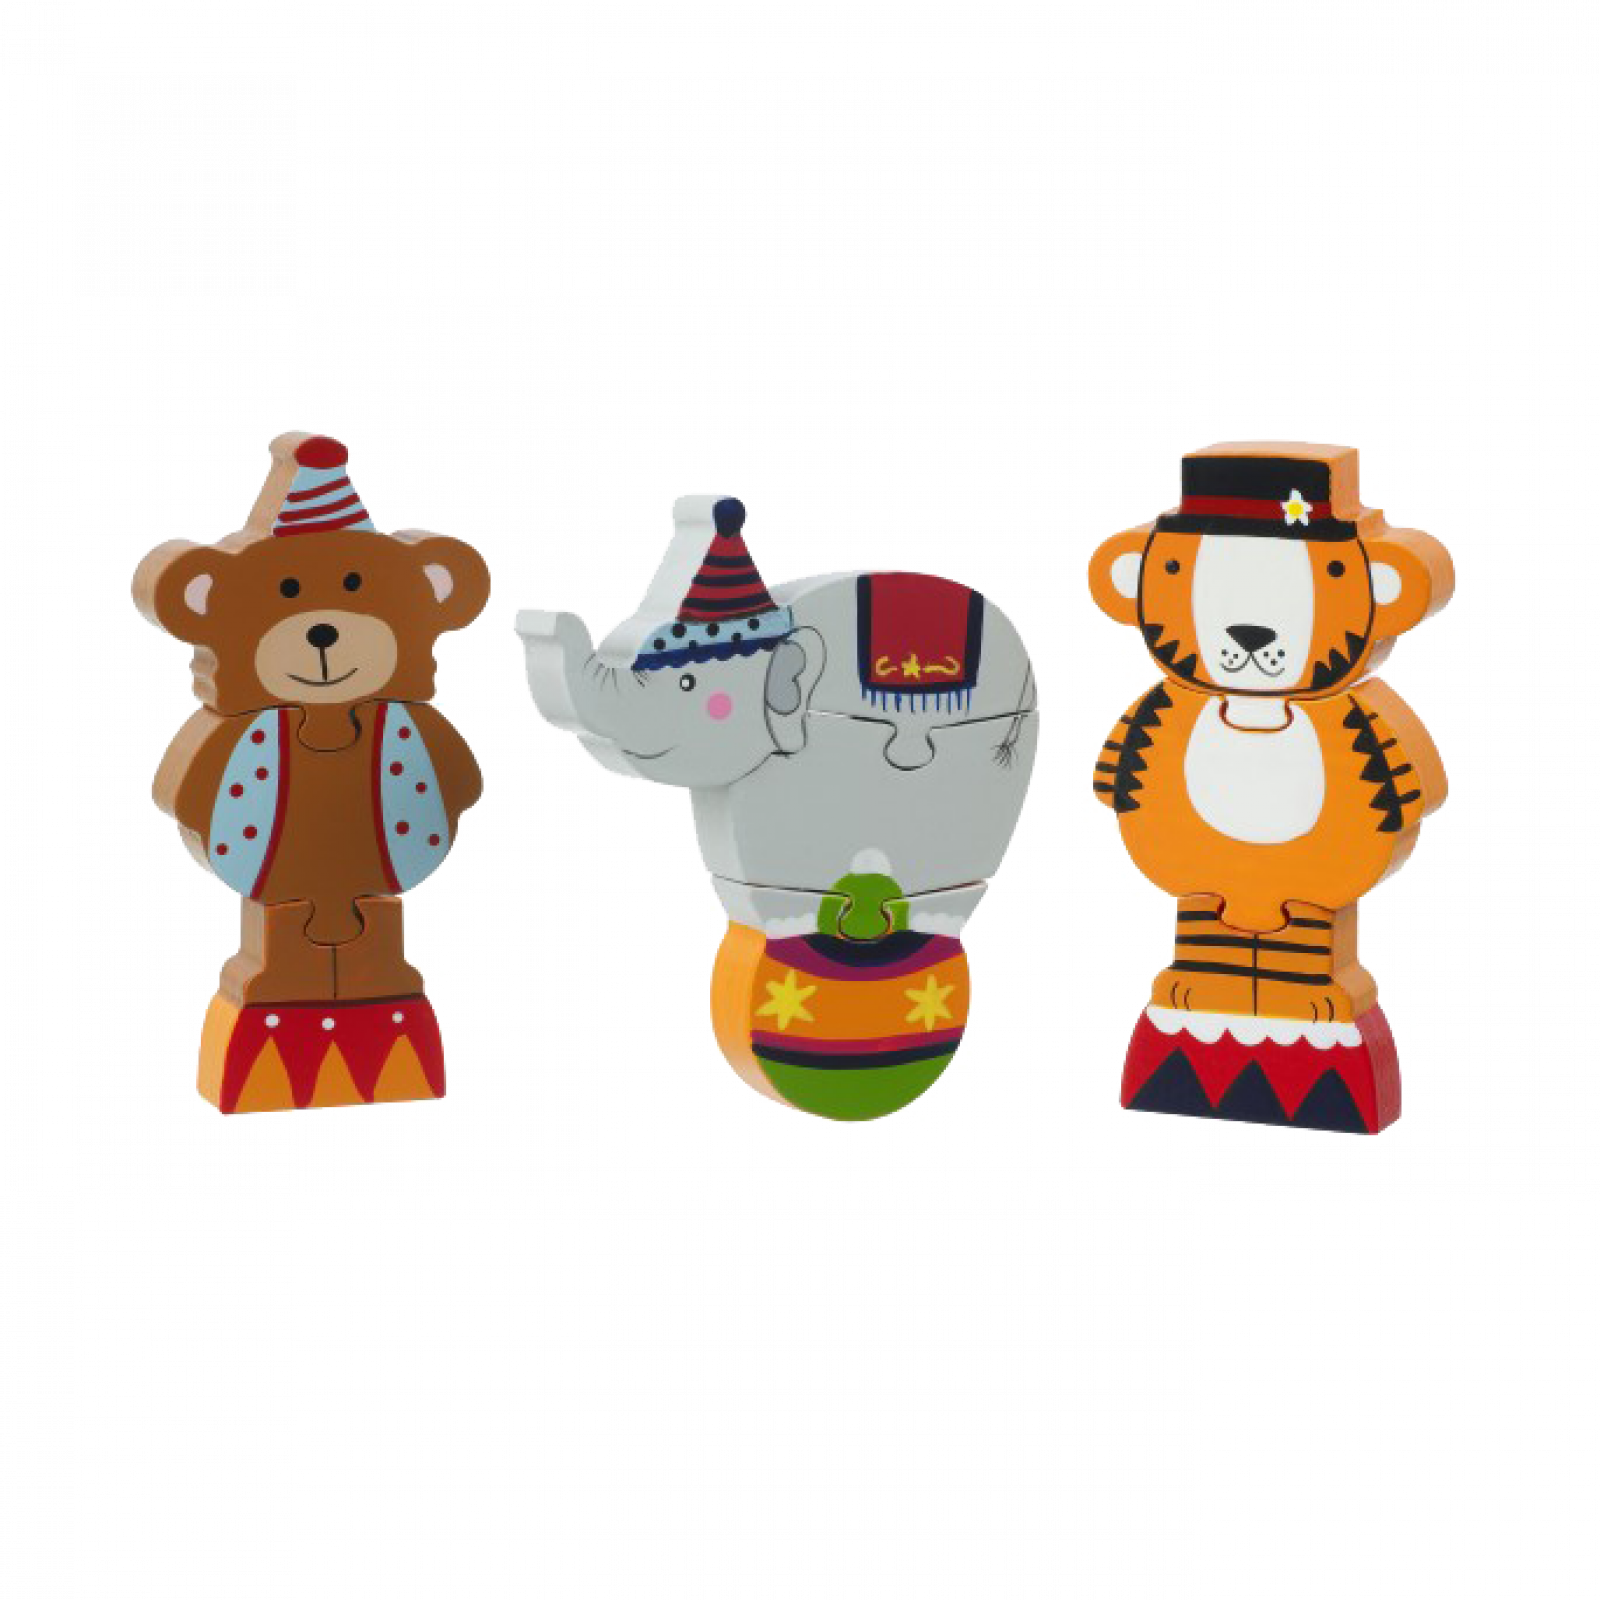 Circus Mini Puzzles - Set Of 3 Wooden Puzzles 1+ thumbnails